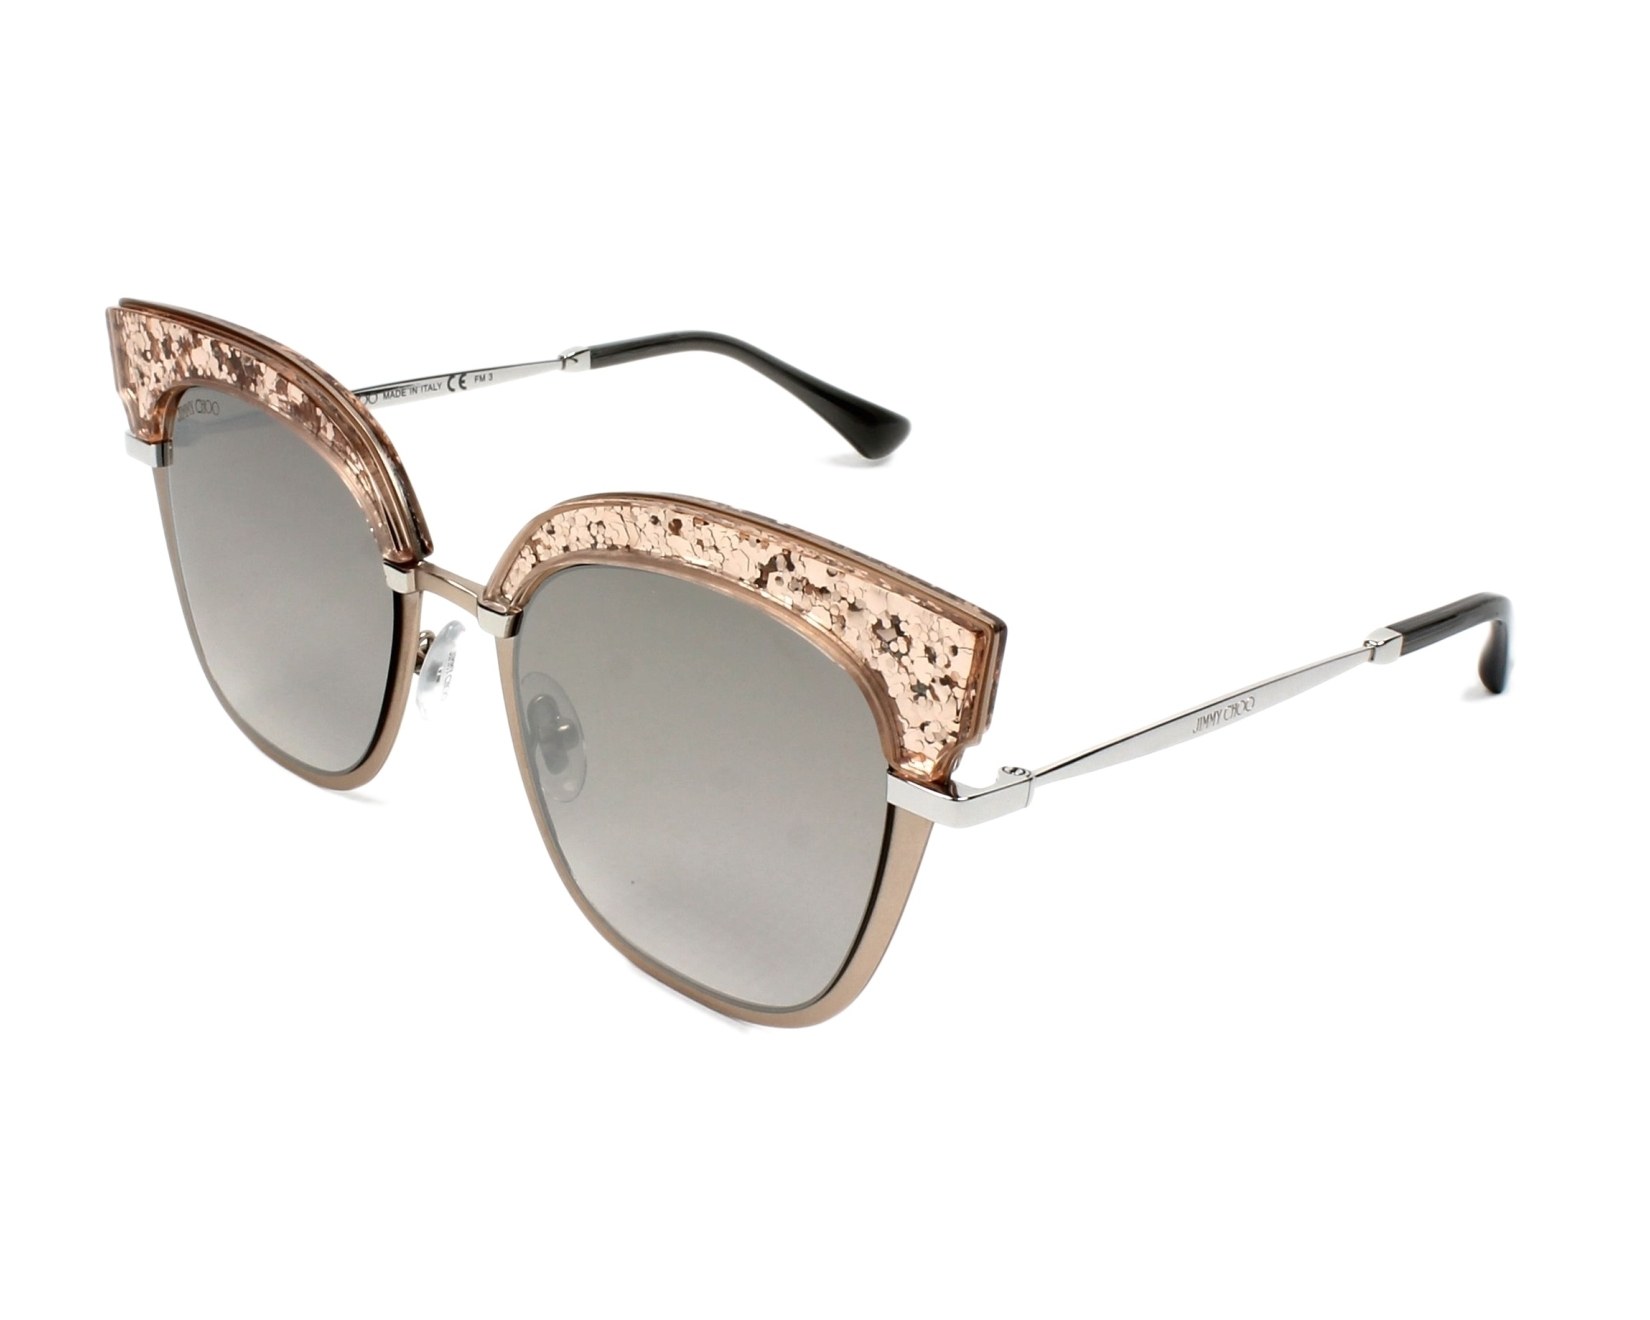 1b7aad6ae63 Sunglasses Jimmy Choo ROSY-S 68I NQ 51-20 Rose gold profile view